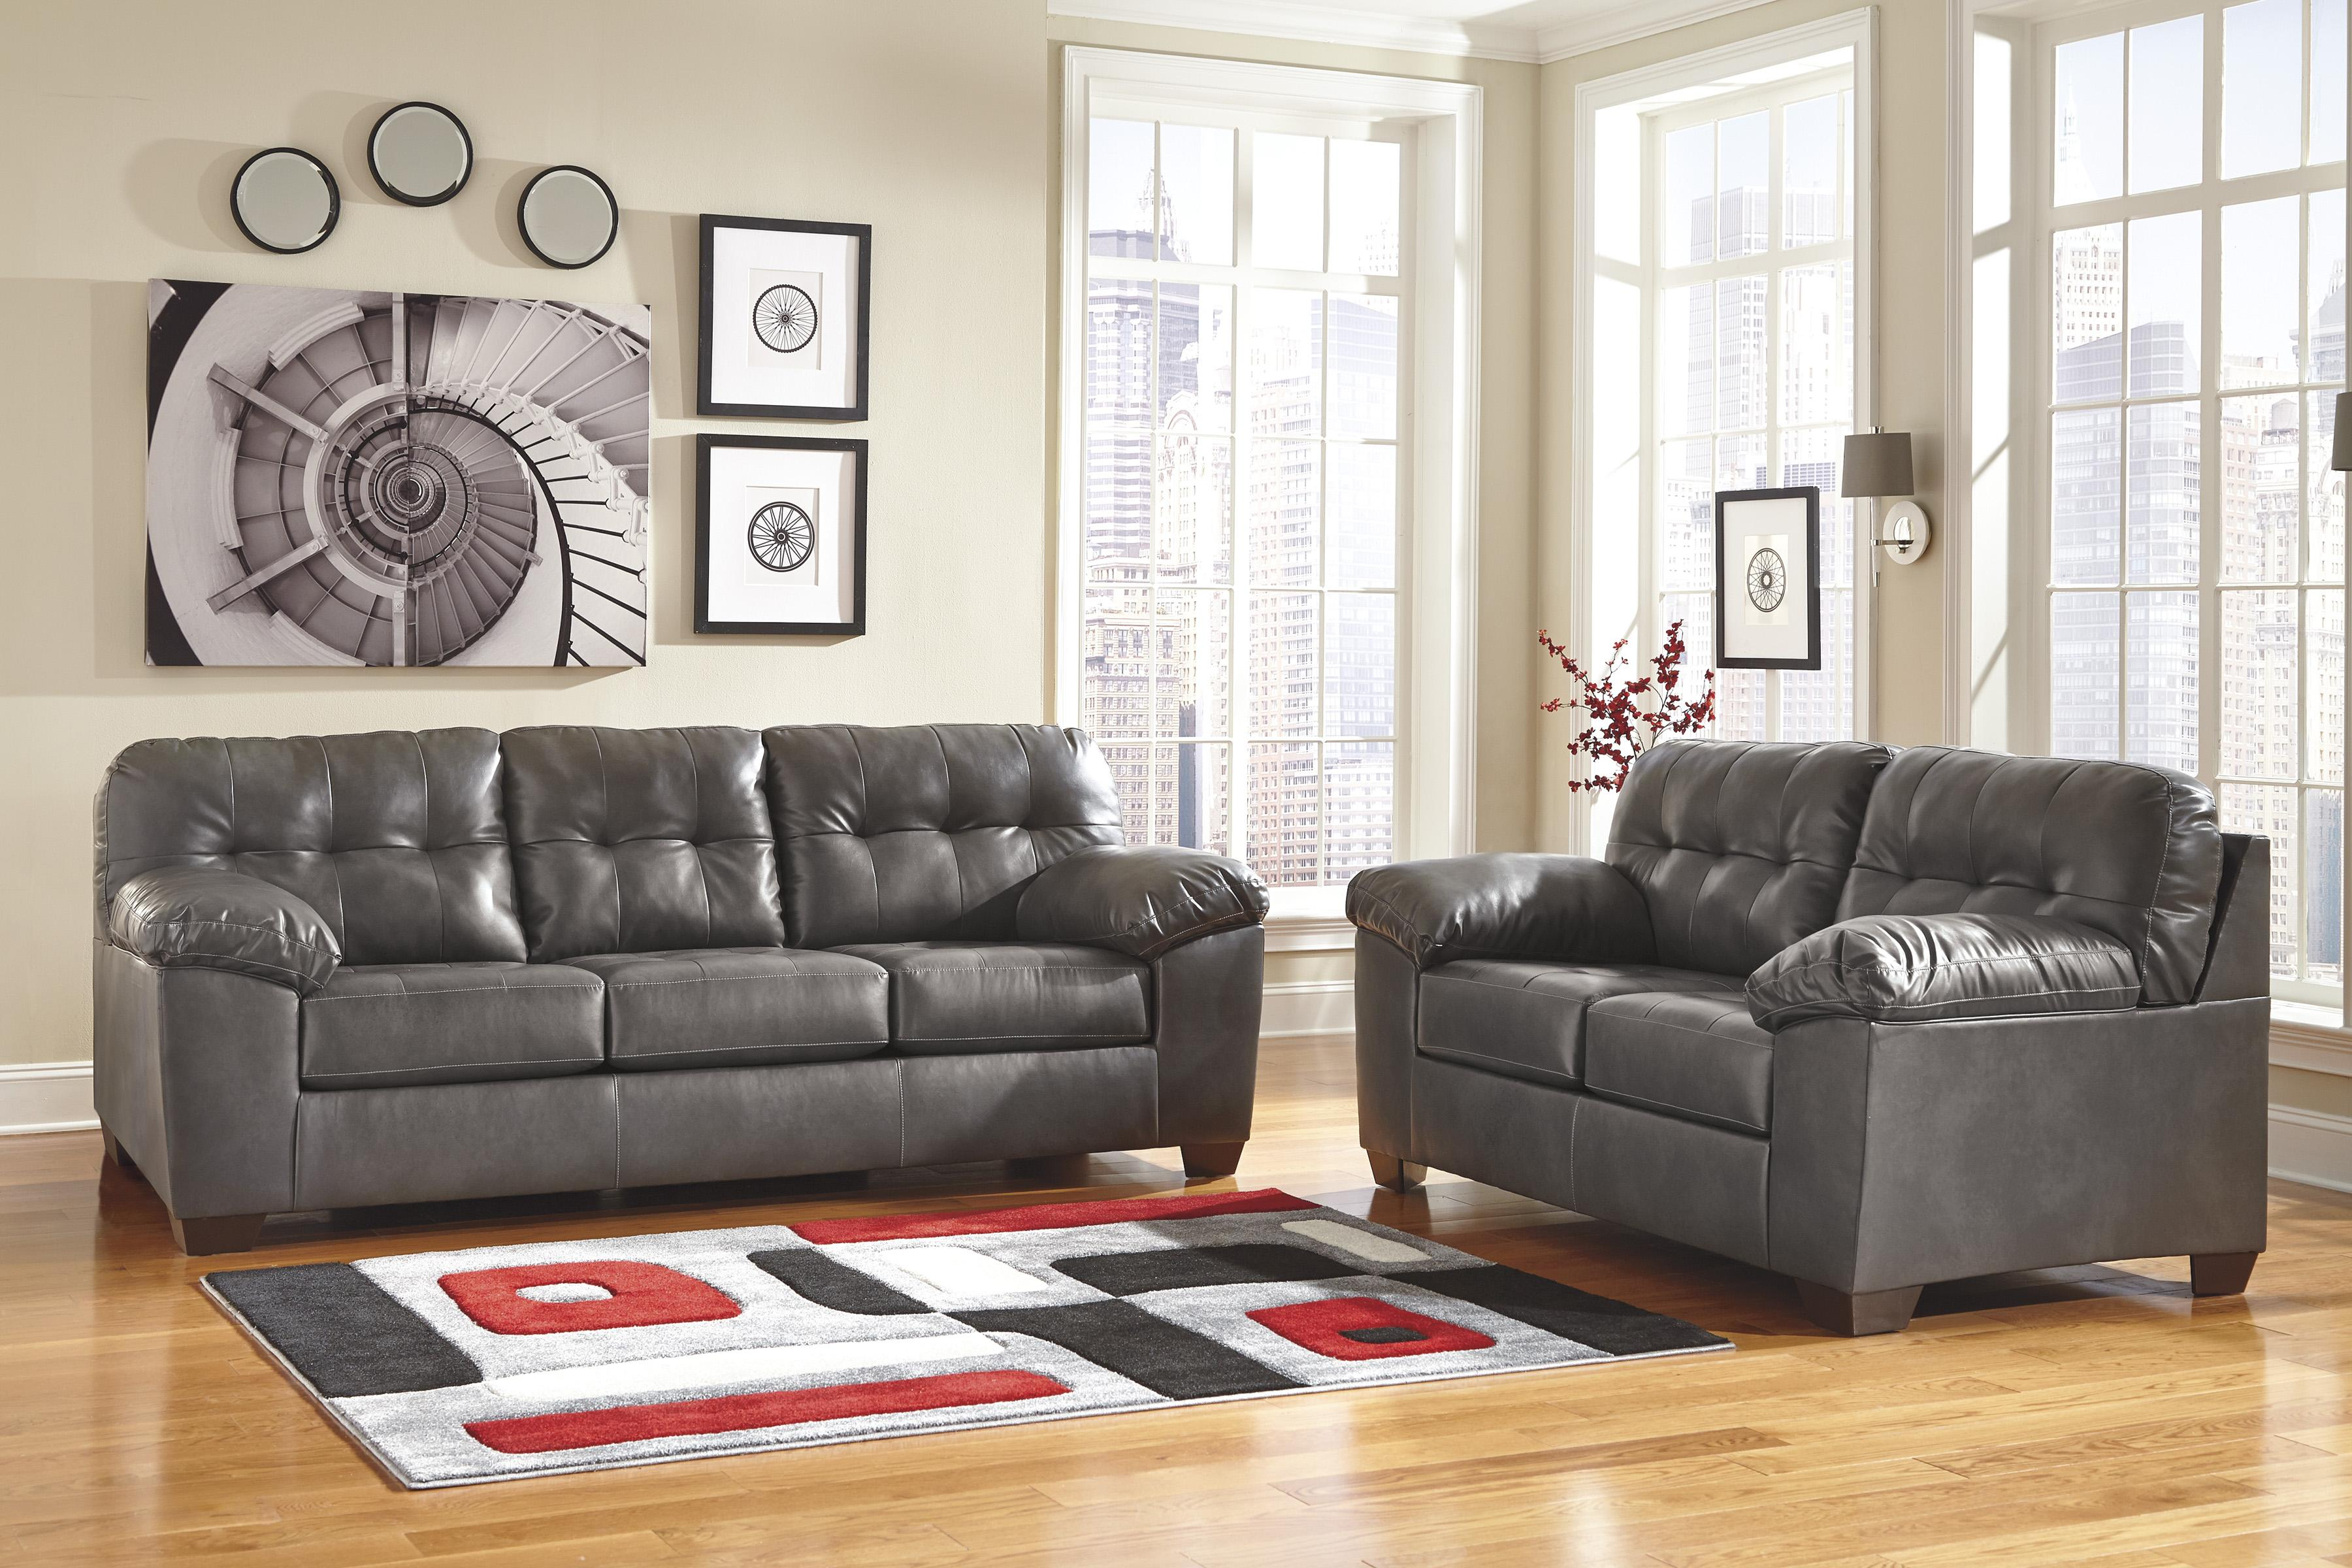 Alliston DuraBlend® - Gray Stationary Living Room Group by Signature Design by Ashley at Suburban Furniture